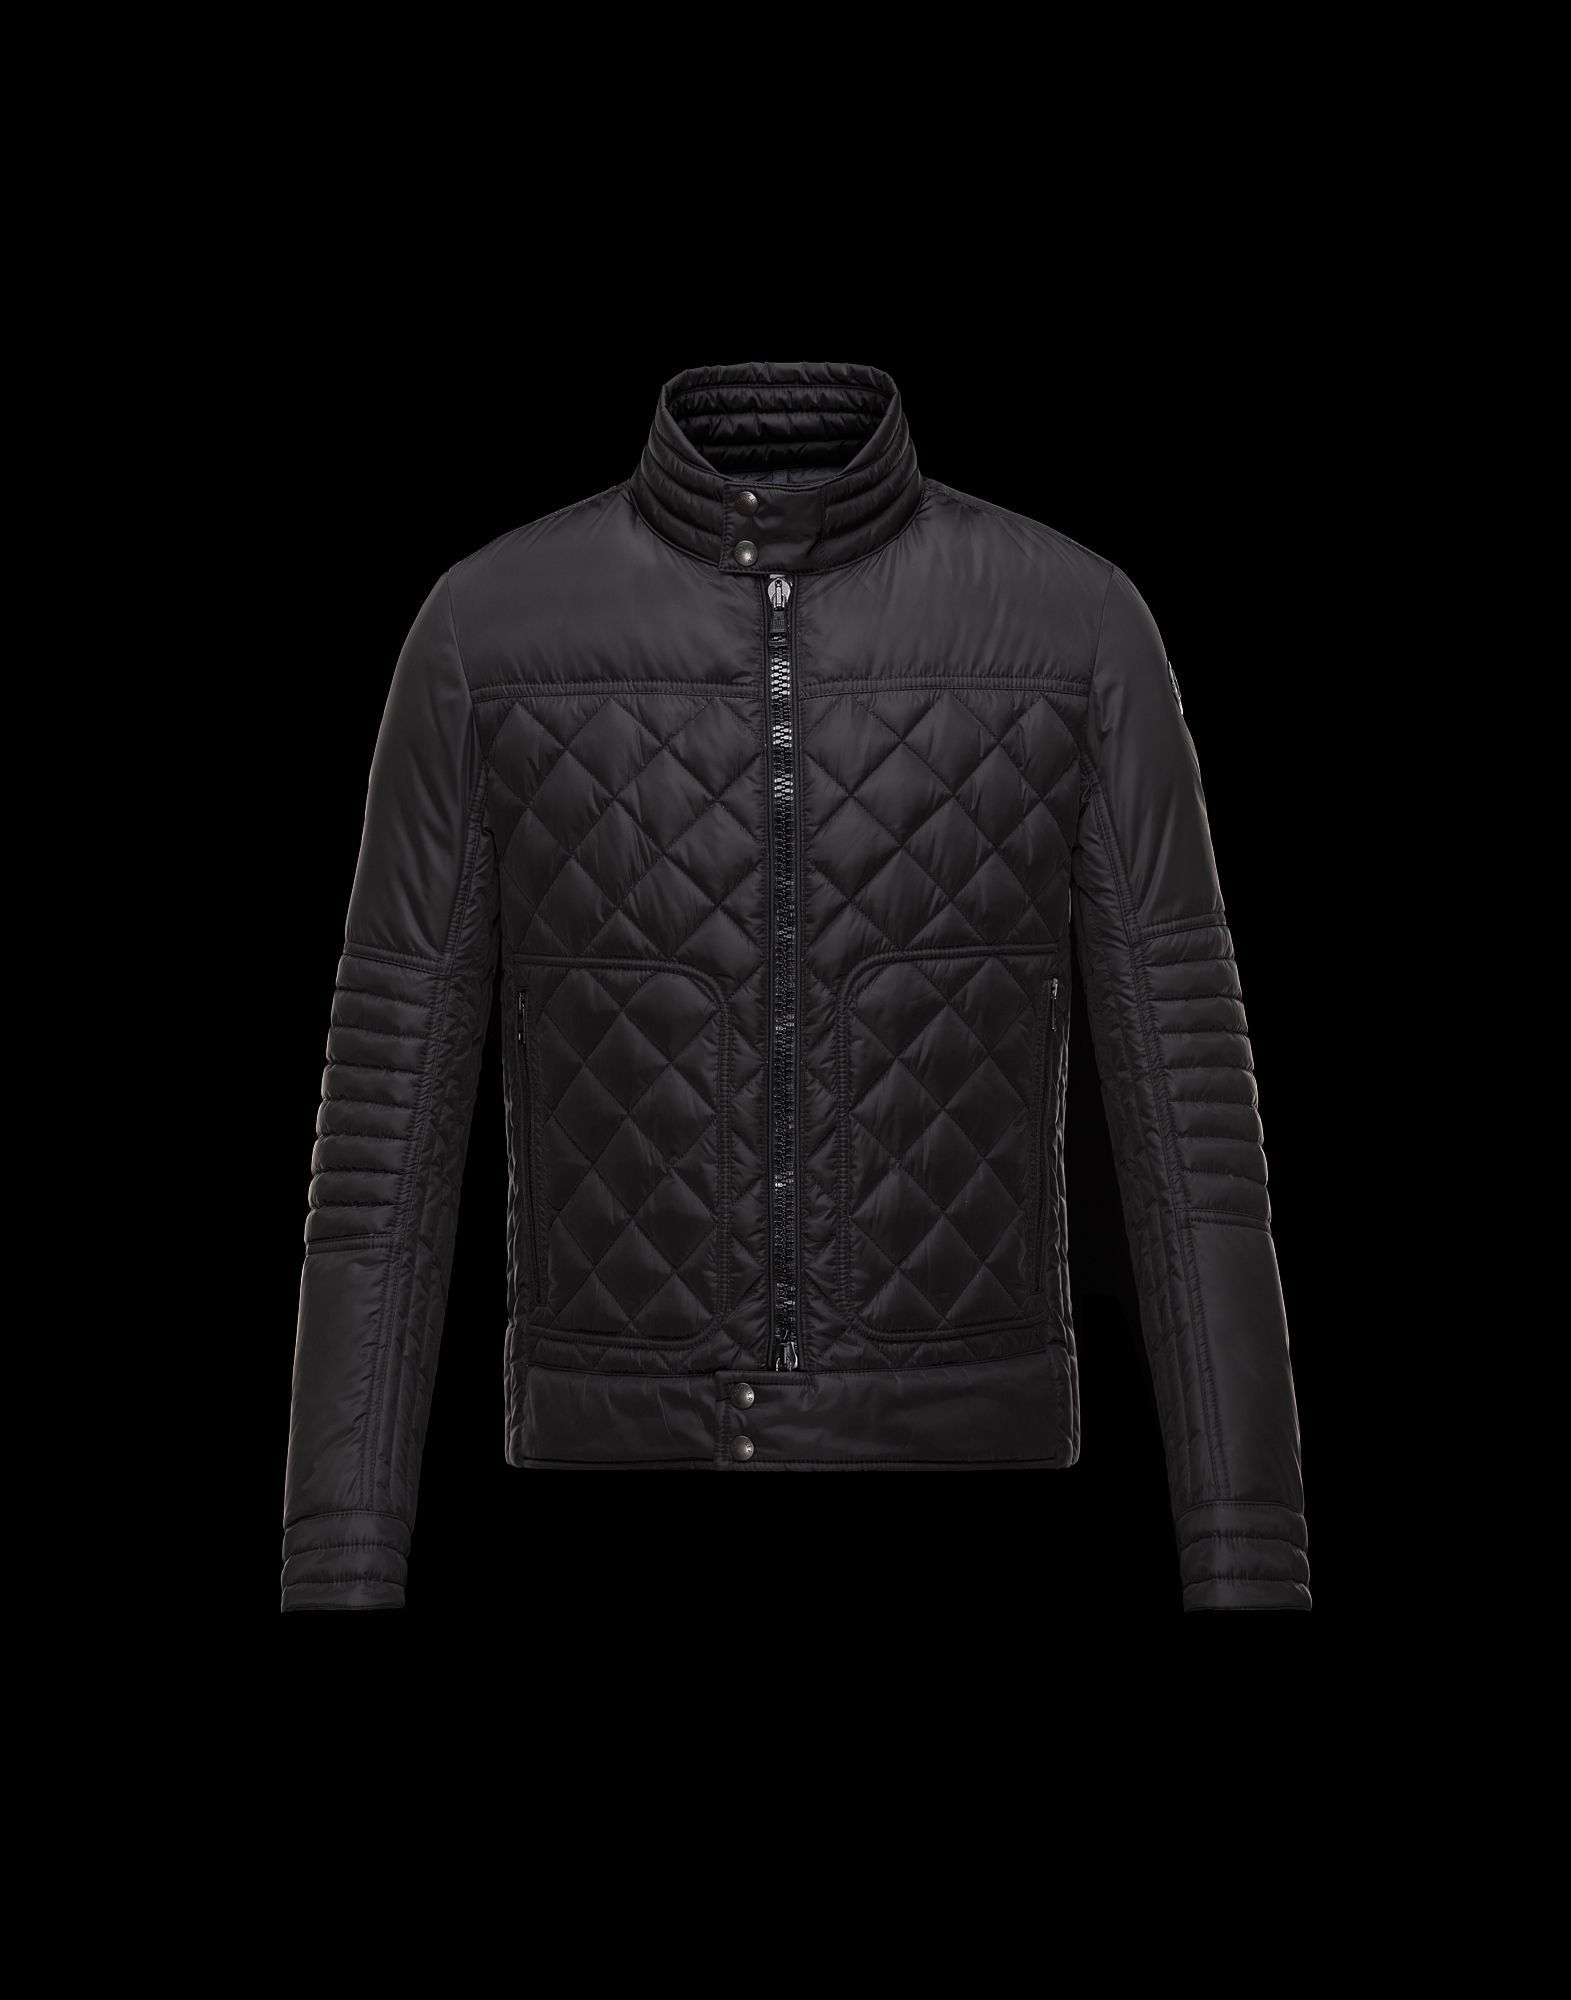 e7210ff6b Jacket Men Moncler - Original products on store.moncler.com